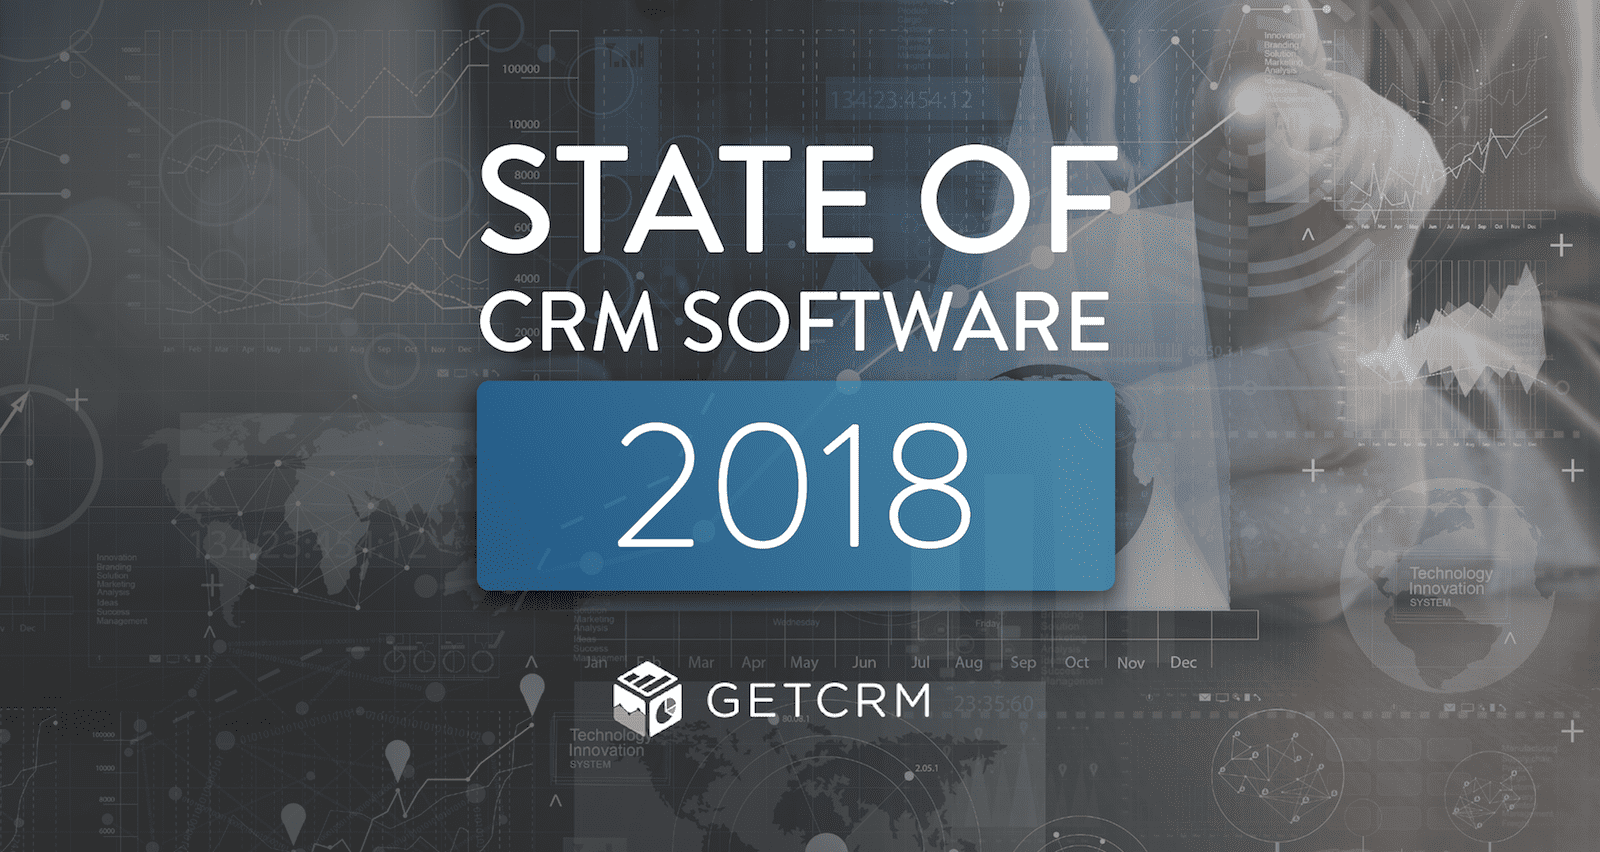 The State of CRM Software in 2018 | GetCRM